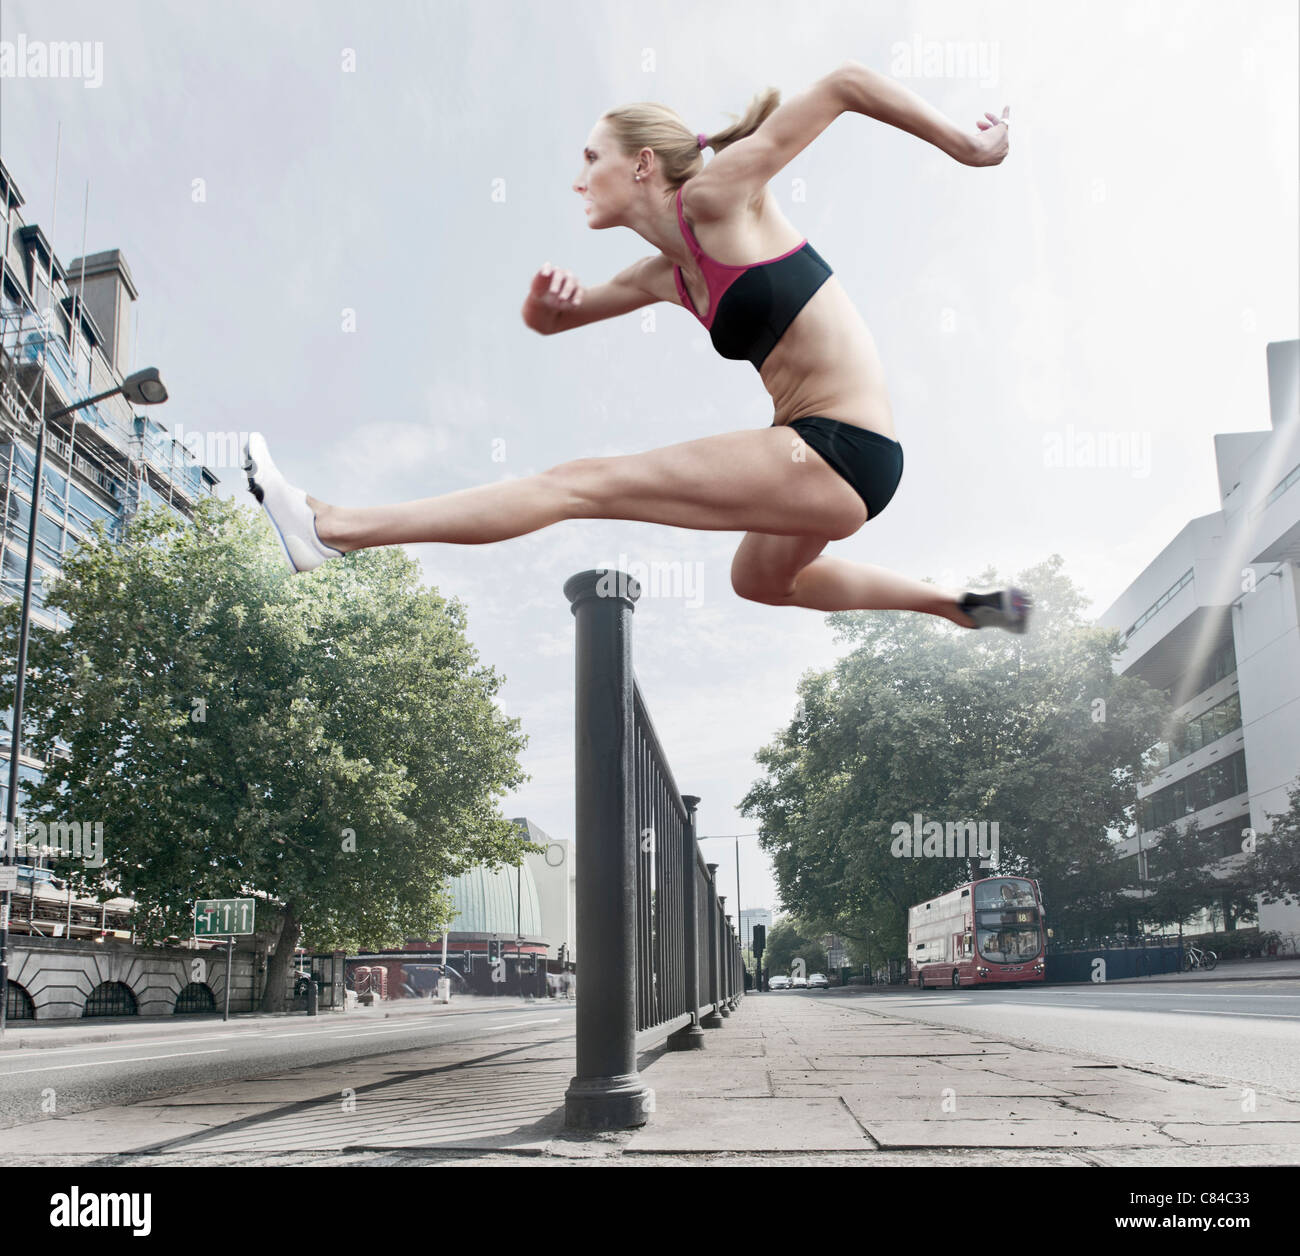 Athlete jumping over banister on street Stock Foto